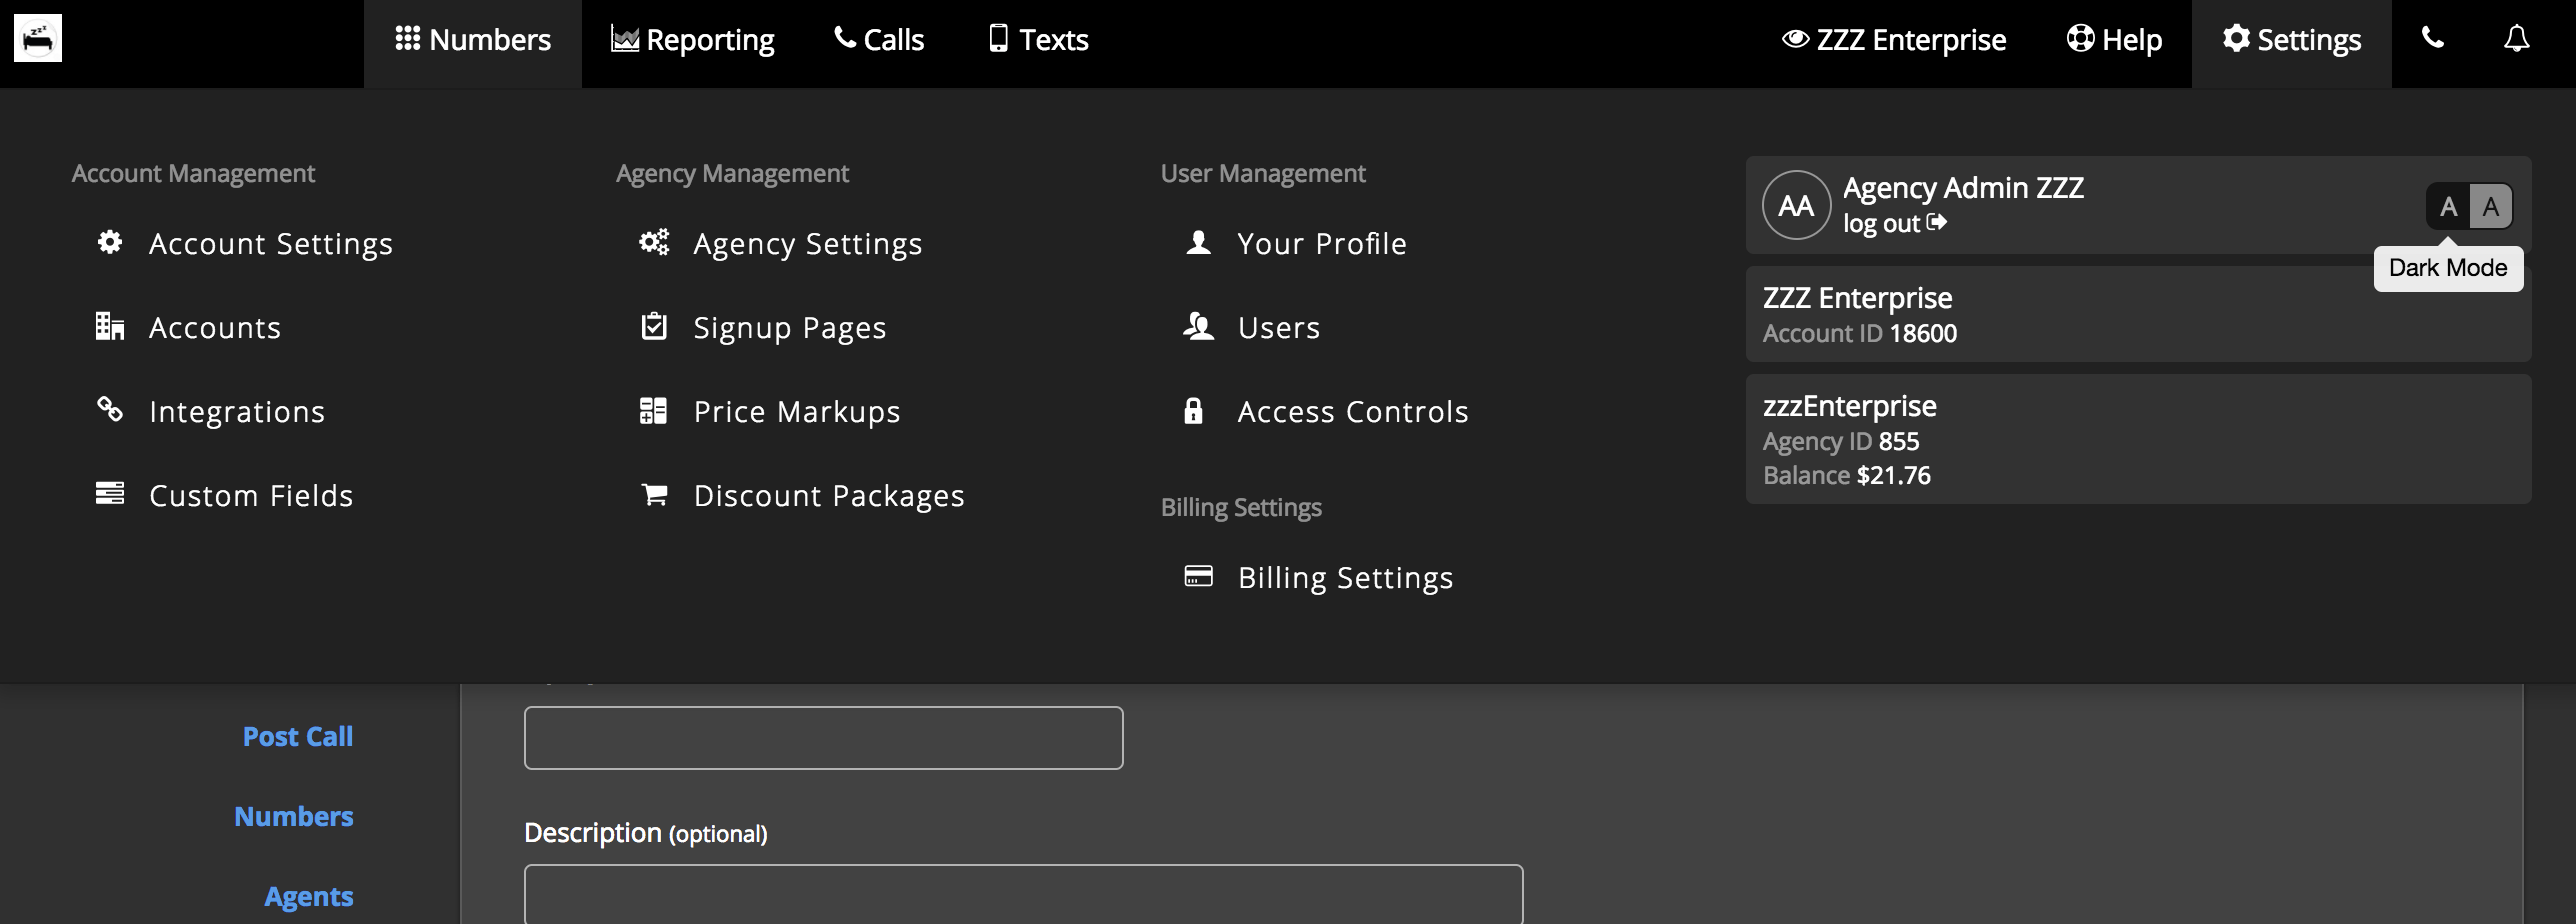 The Appearance section of the Agency Settings or Account Settings page